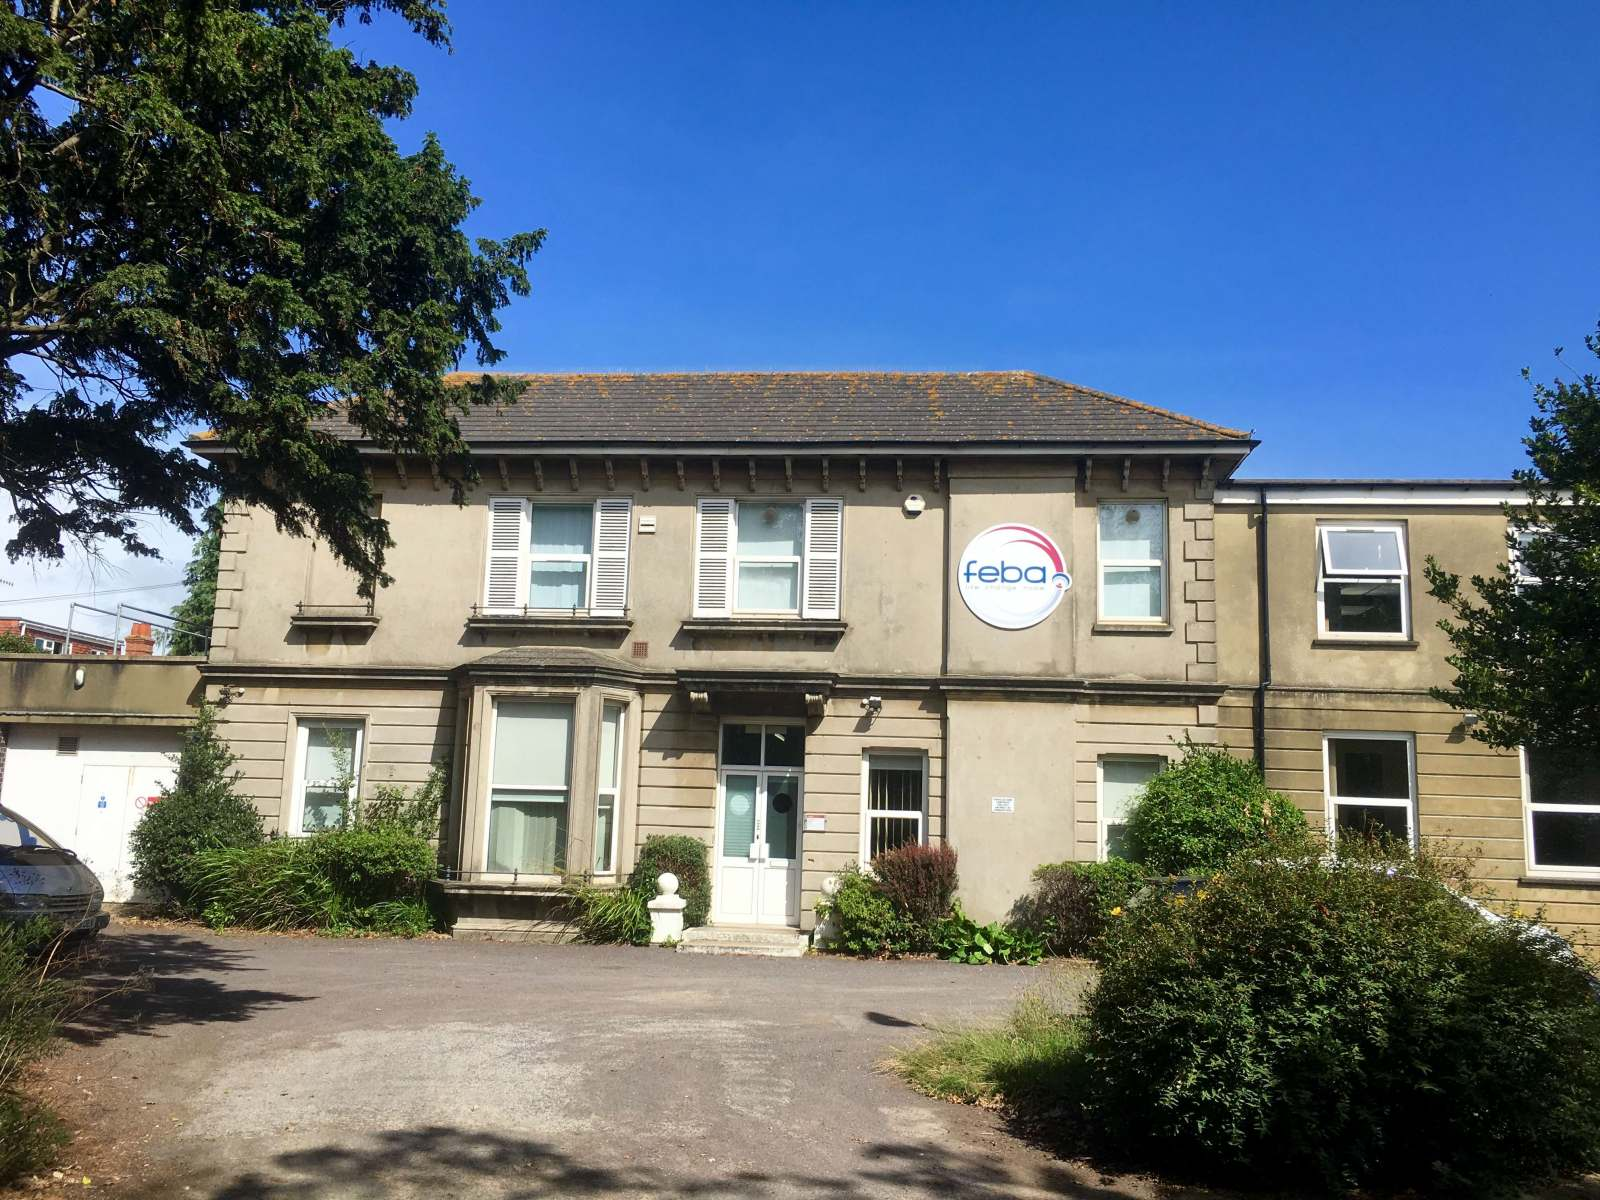 EXTENSIVE DETACHED FREEHOLD BUILDING FOR SALE SUITABLE FOR VARIOUS USES STPP IN WORTHING